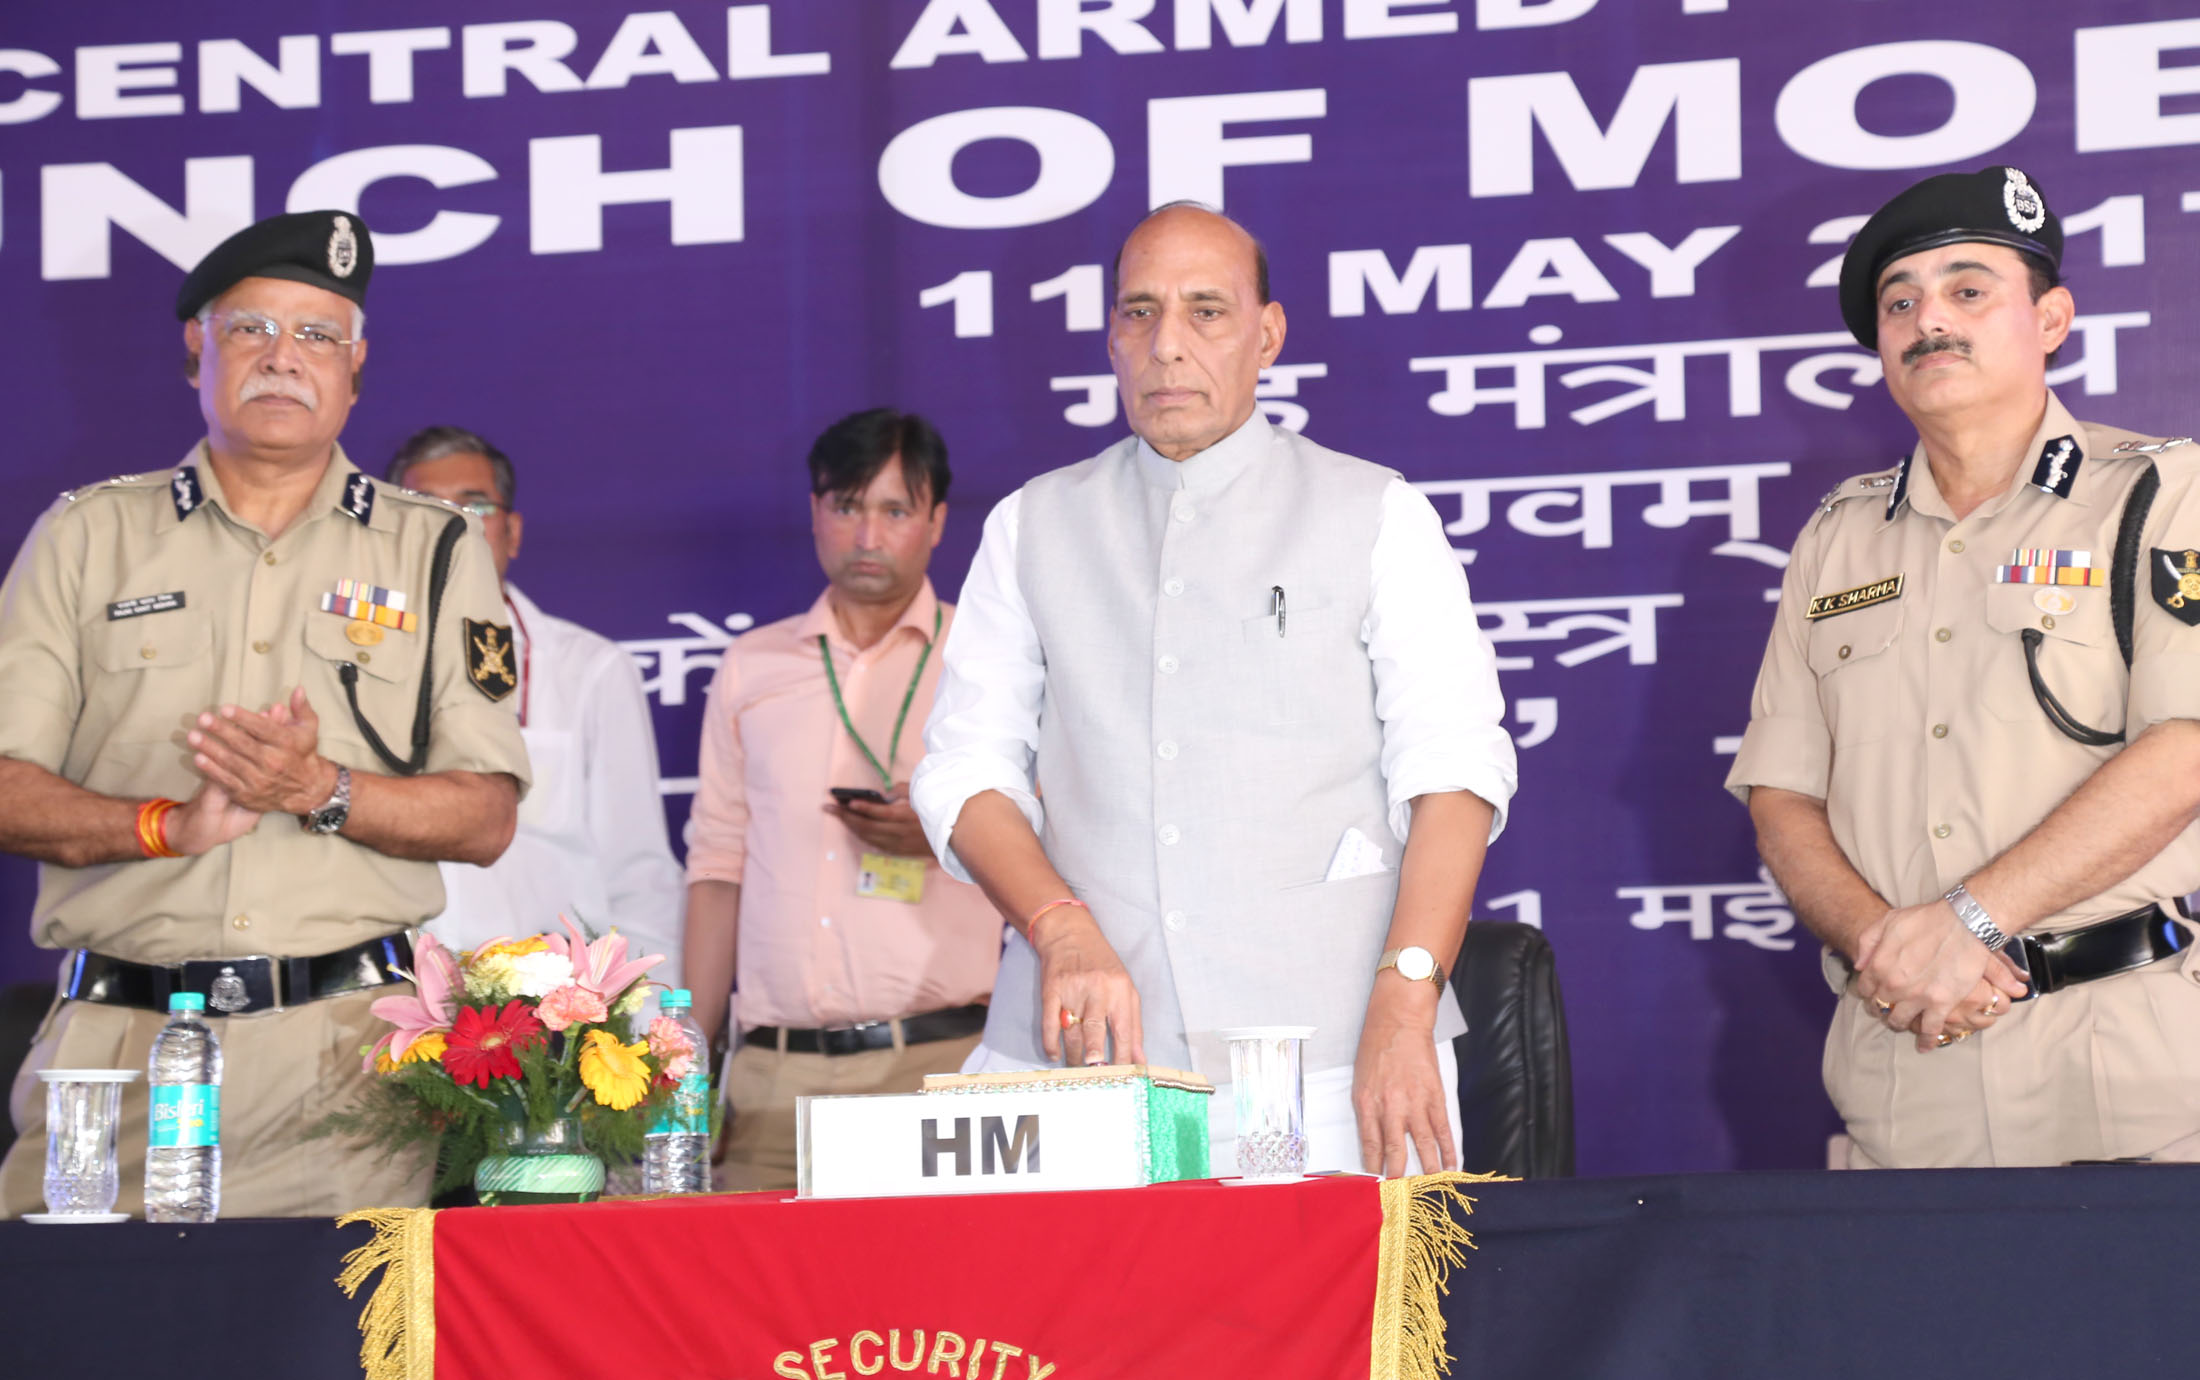 The Union Home Minister, Shri Rajnath Singh launching the BSFMyApp, in New Delhi on May 11, 2017.  The DG, BSF, Shri K. K. Sharma is also seen.